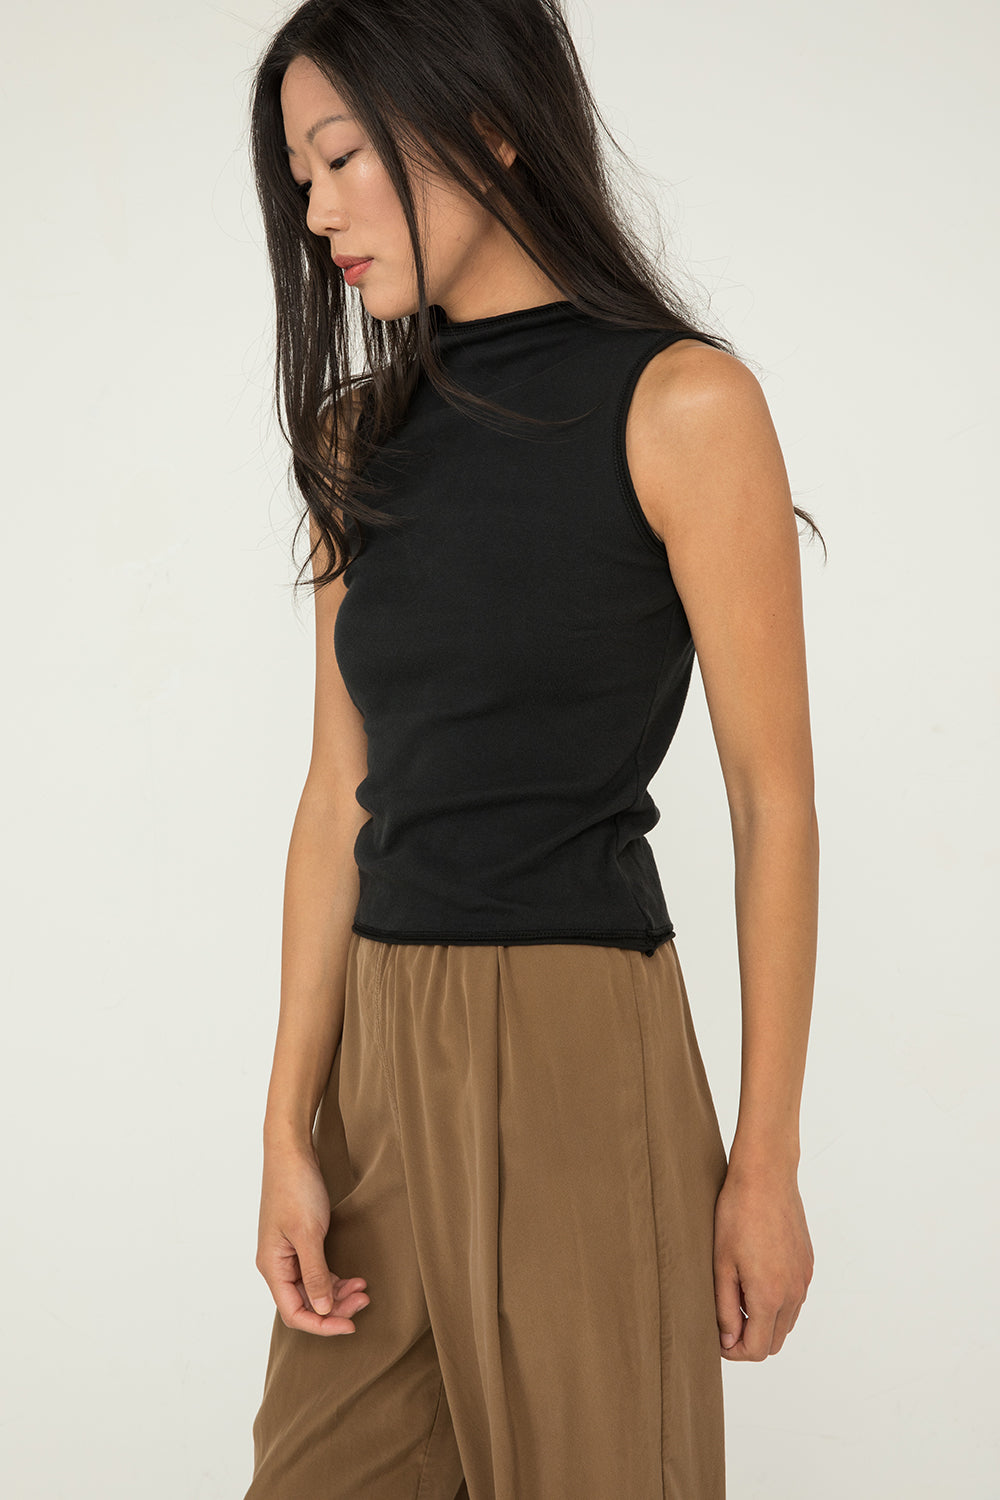 Sleeveless James Mock Neck in Lightweight Cotton Knit Black - Chung-XXS